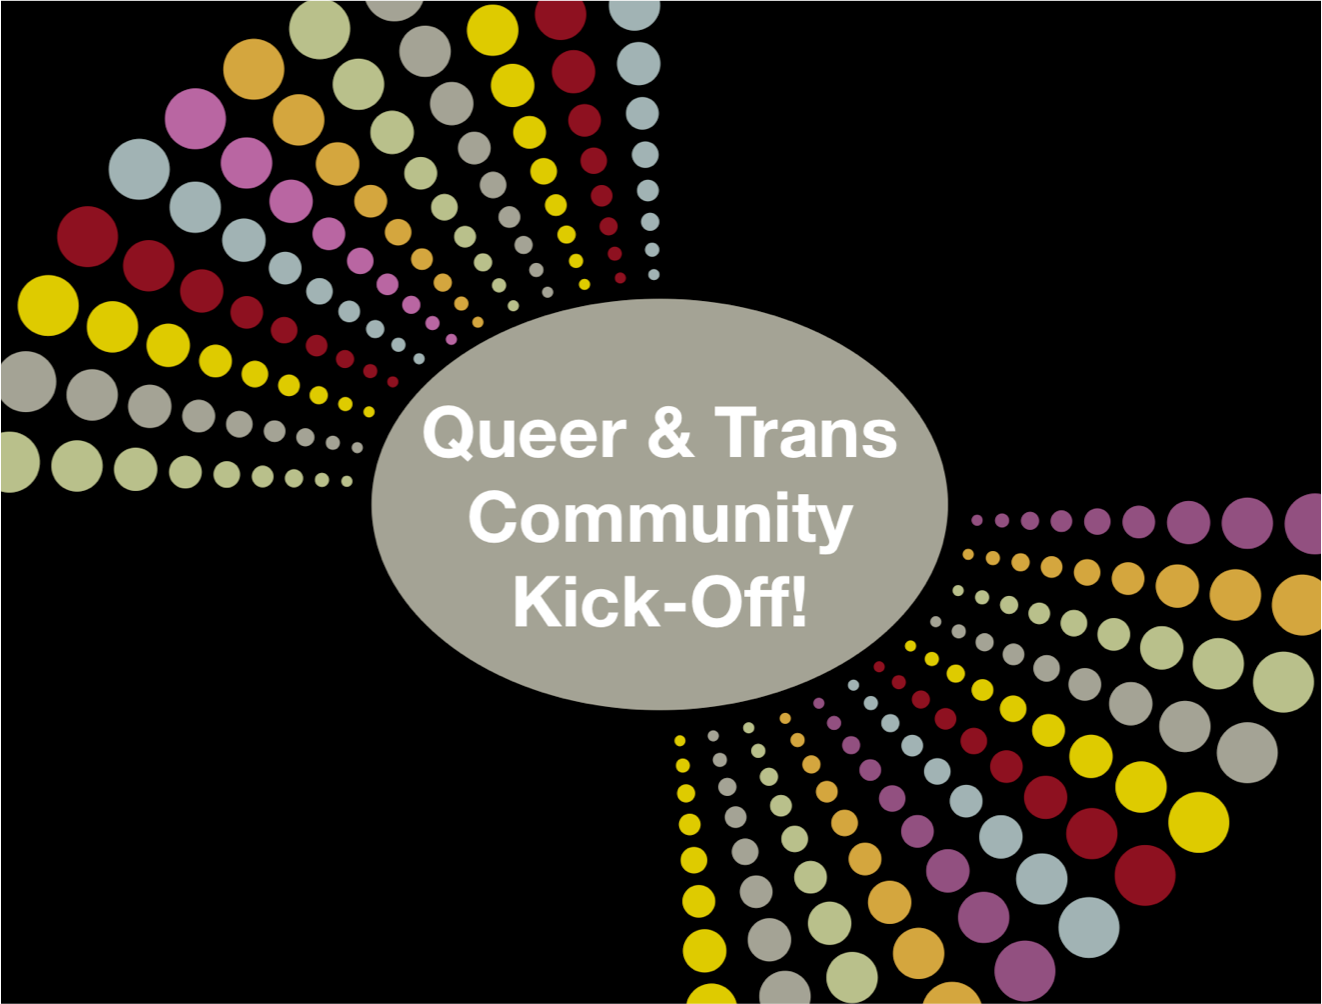 Queer and Trans Community Kick-Off poster